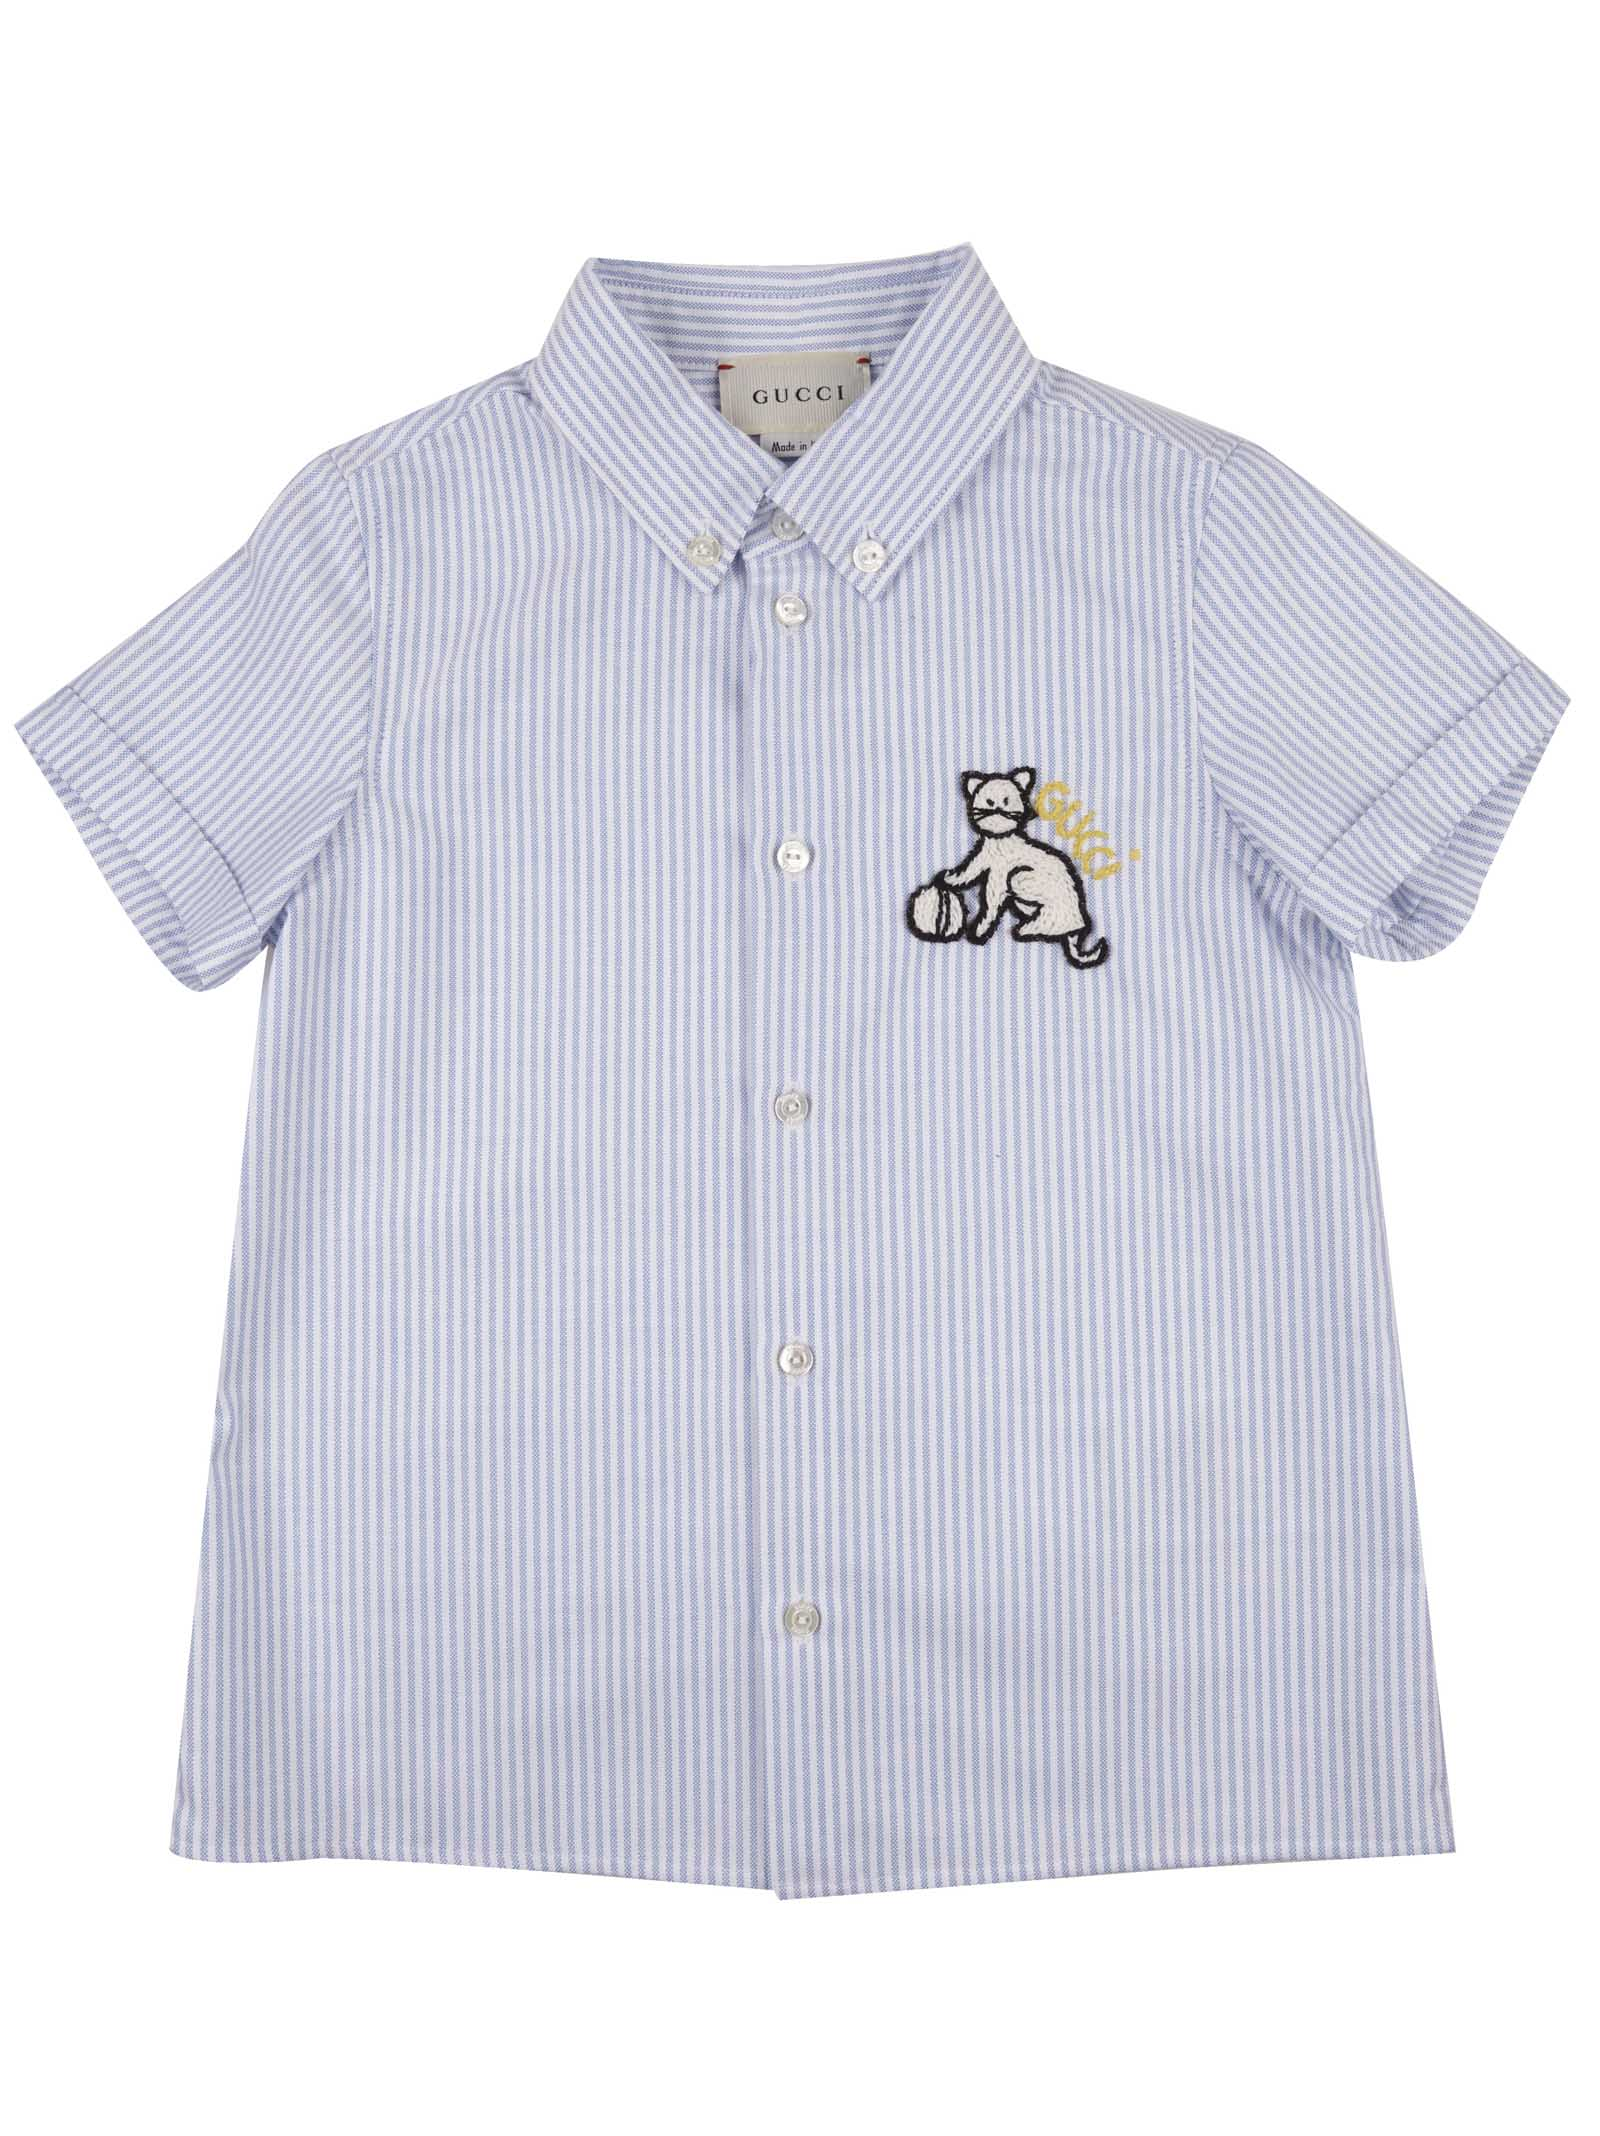 Gucci Junior shirt